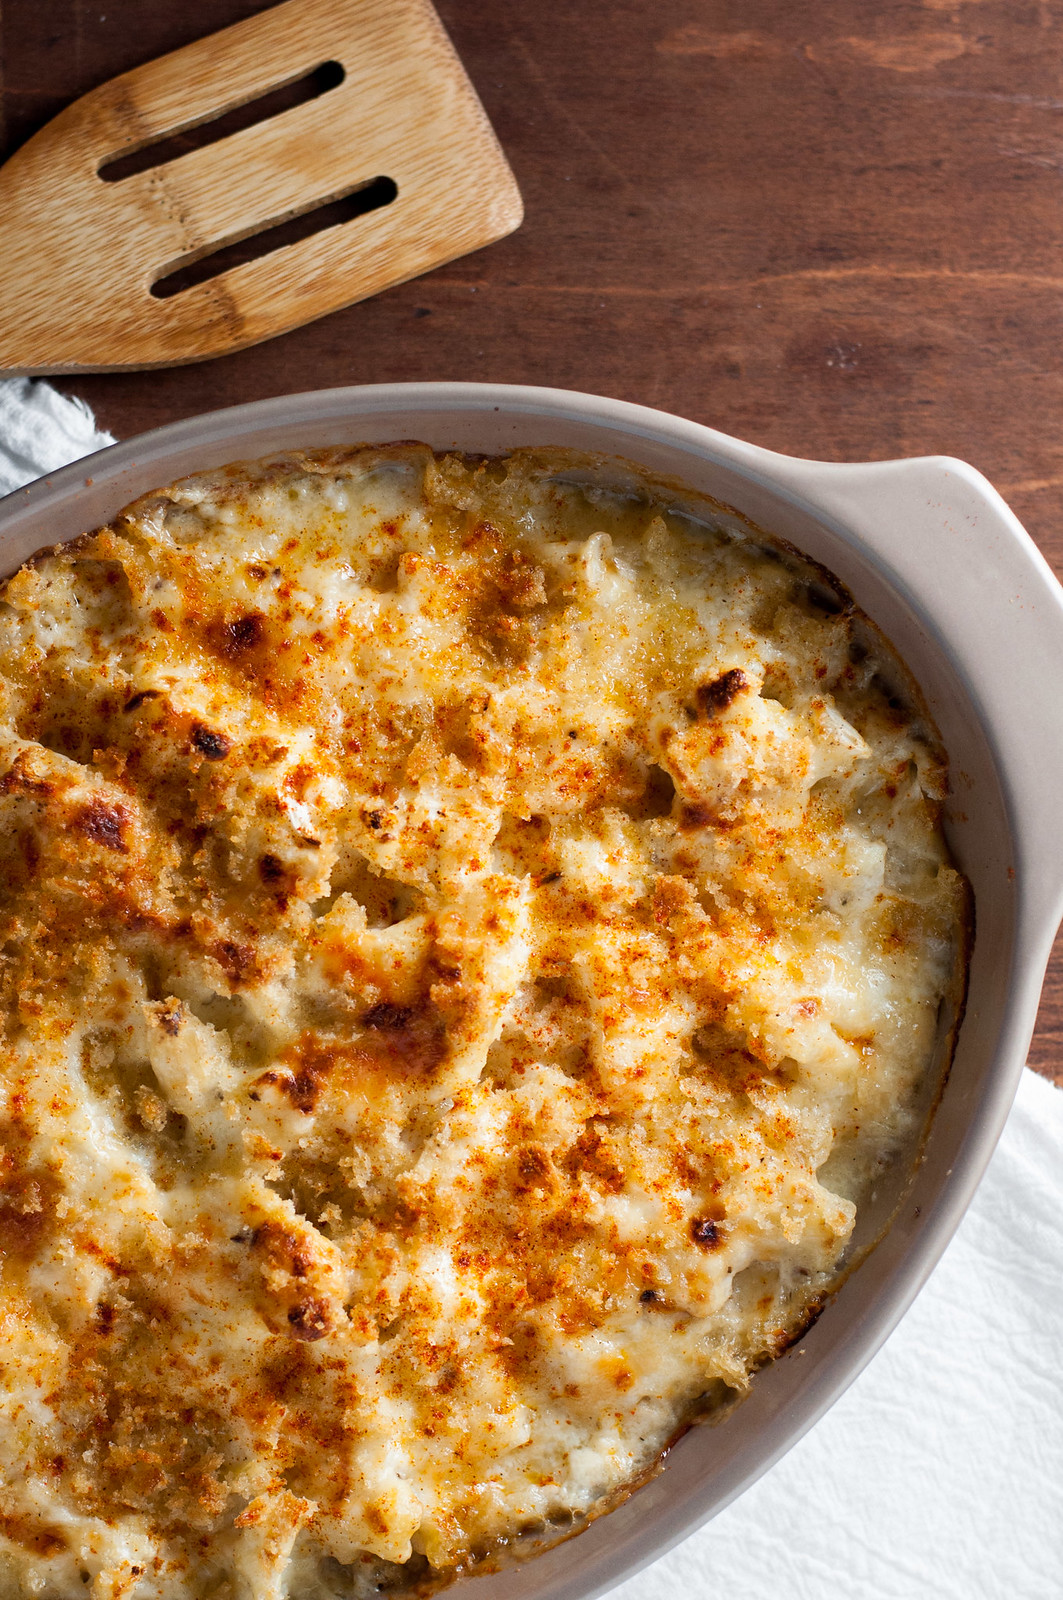 Indulgent vegetarian smoked cheddar and cauliflower gratin